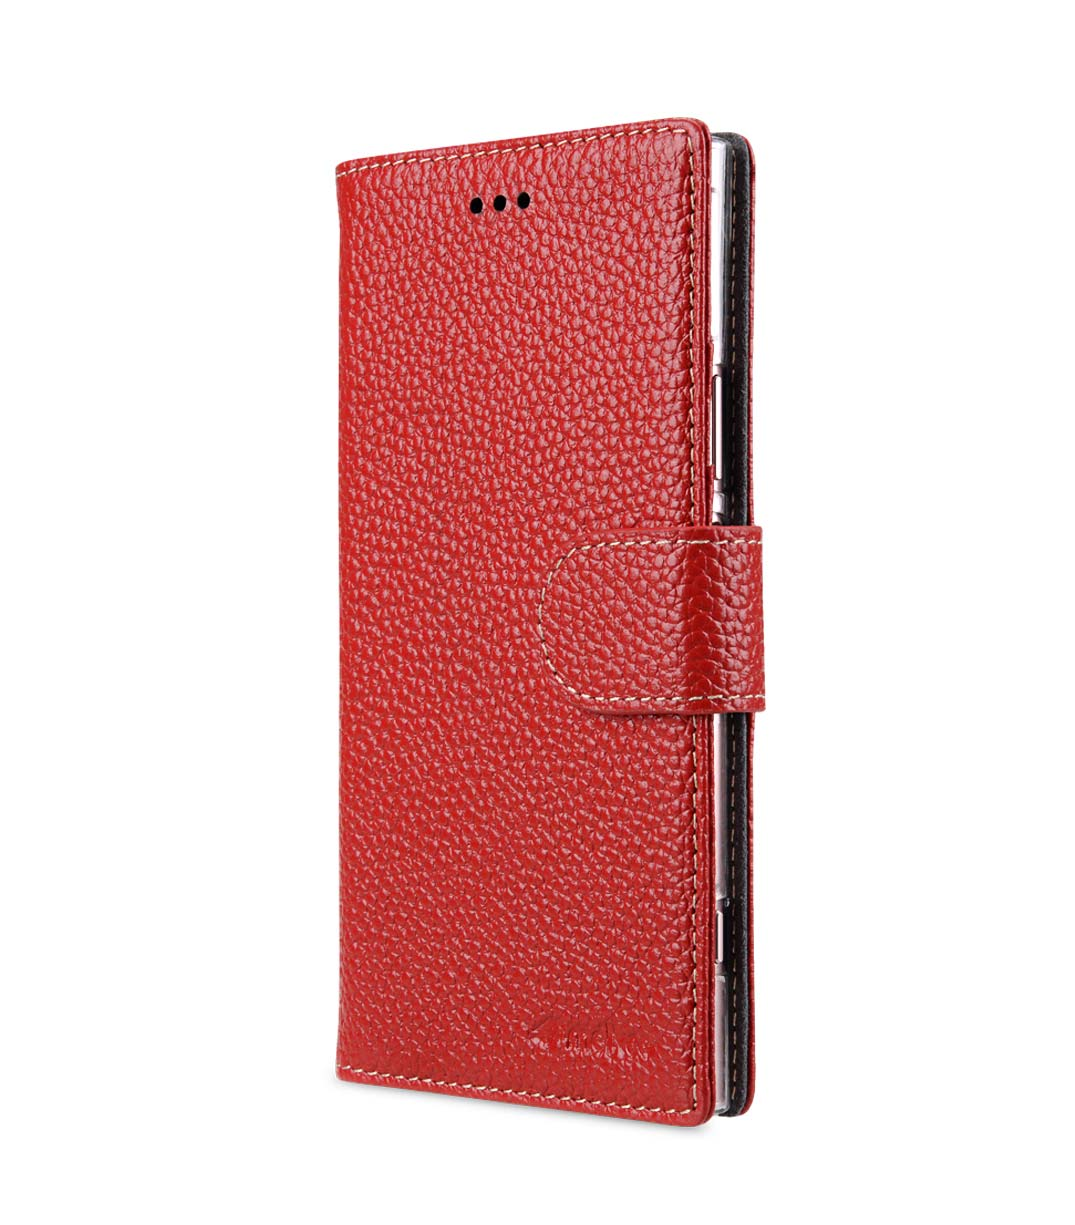 Lomogo Sony Xperia XZ1 Compact 4.6-inch Case Leather Wallet Case with Kickstand Card Holder Shockproof Flip Case Cover for Sony Xperia XZ1 Compact LOBFE150608 Red